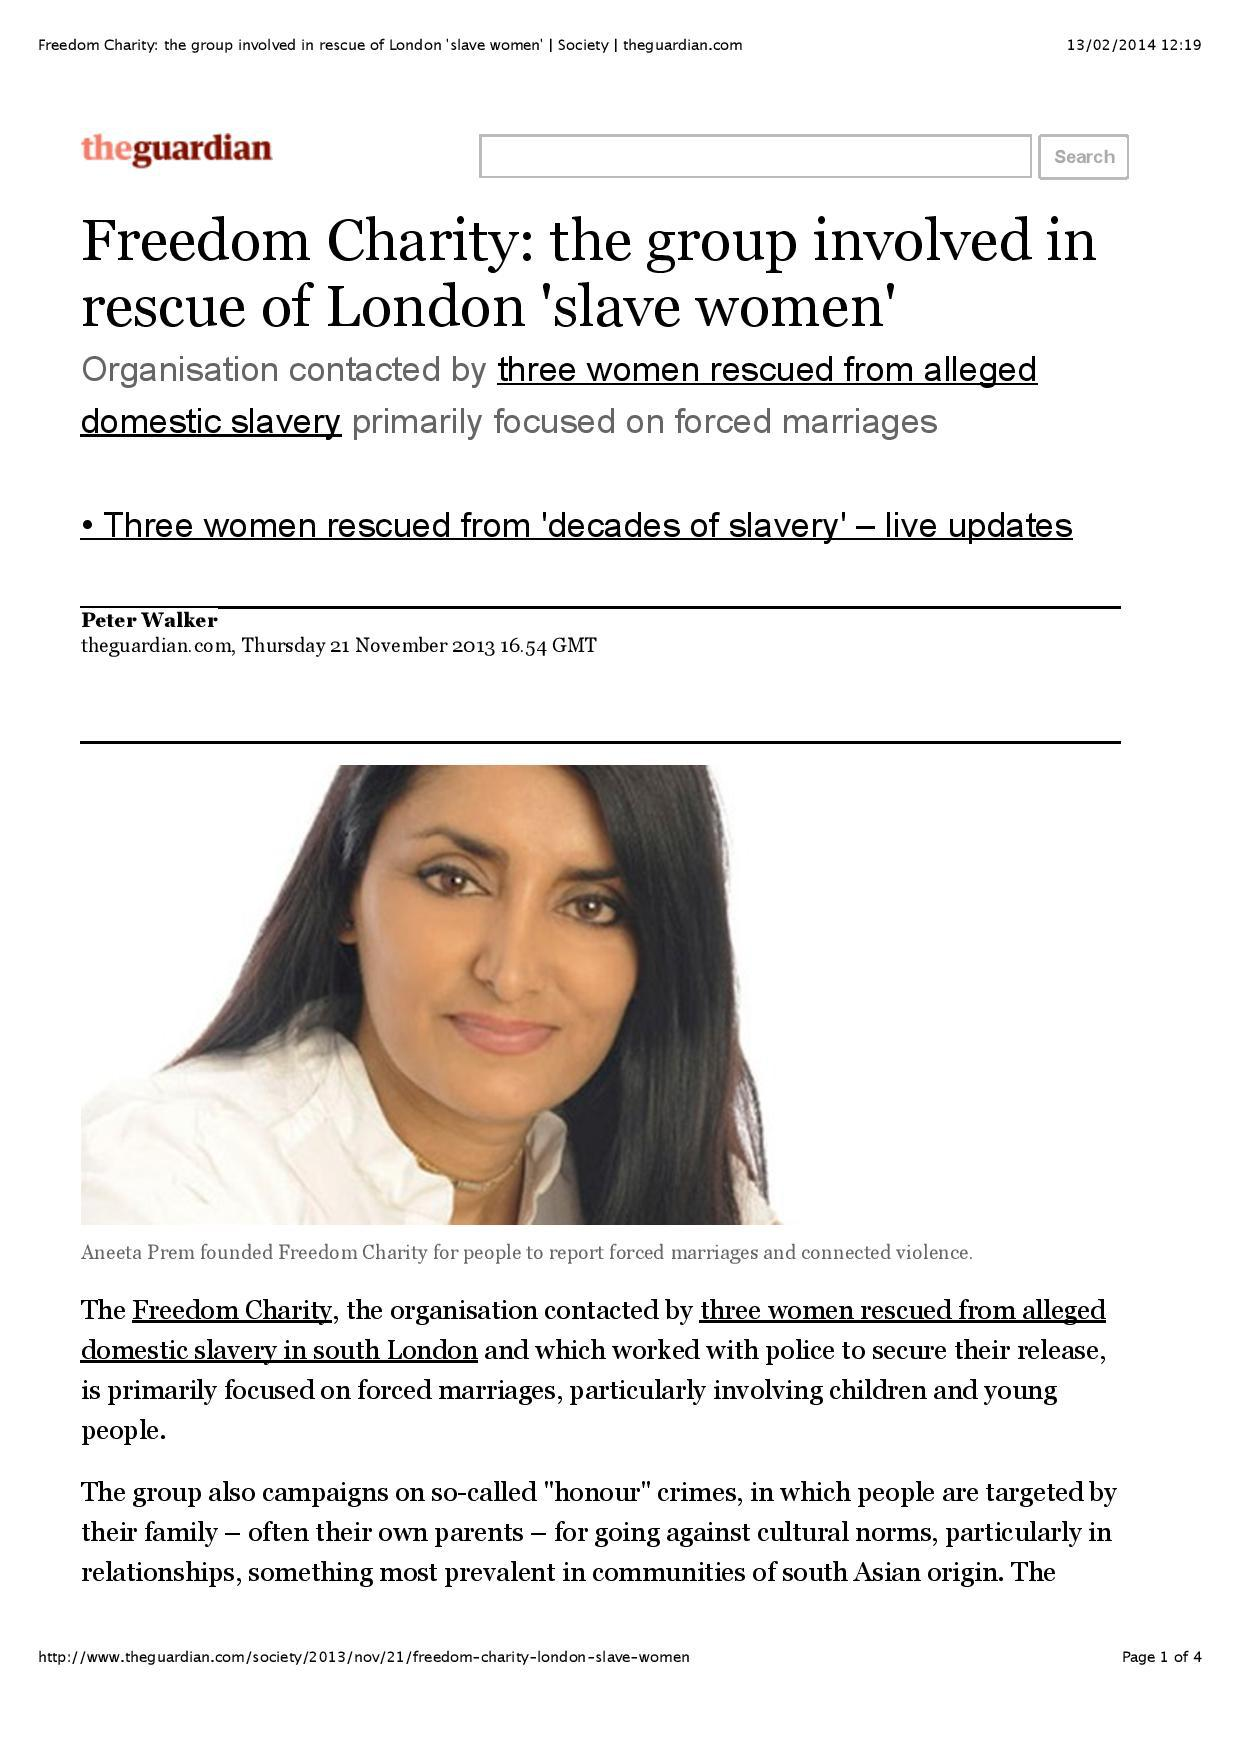 done-freedom-charity-the-group-involved-in-rescue-of-london-slave-women-society-theguardian-com-page-001